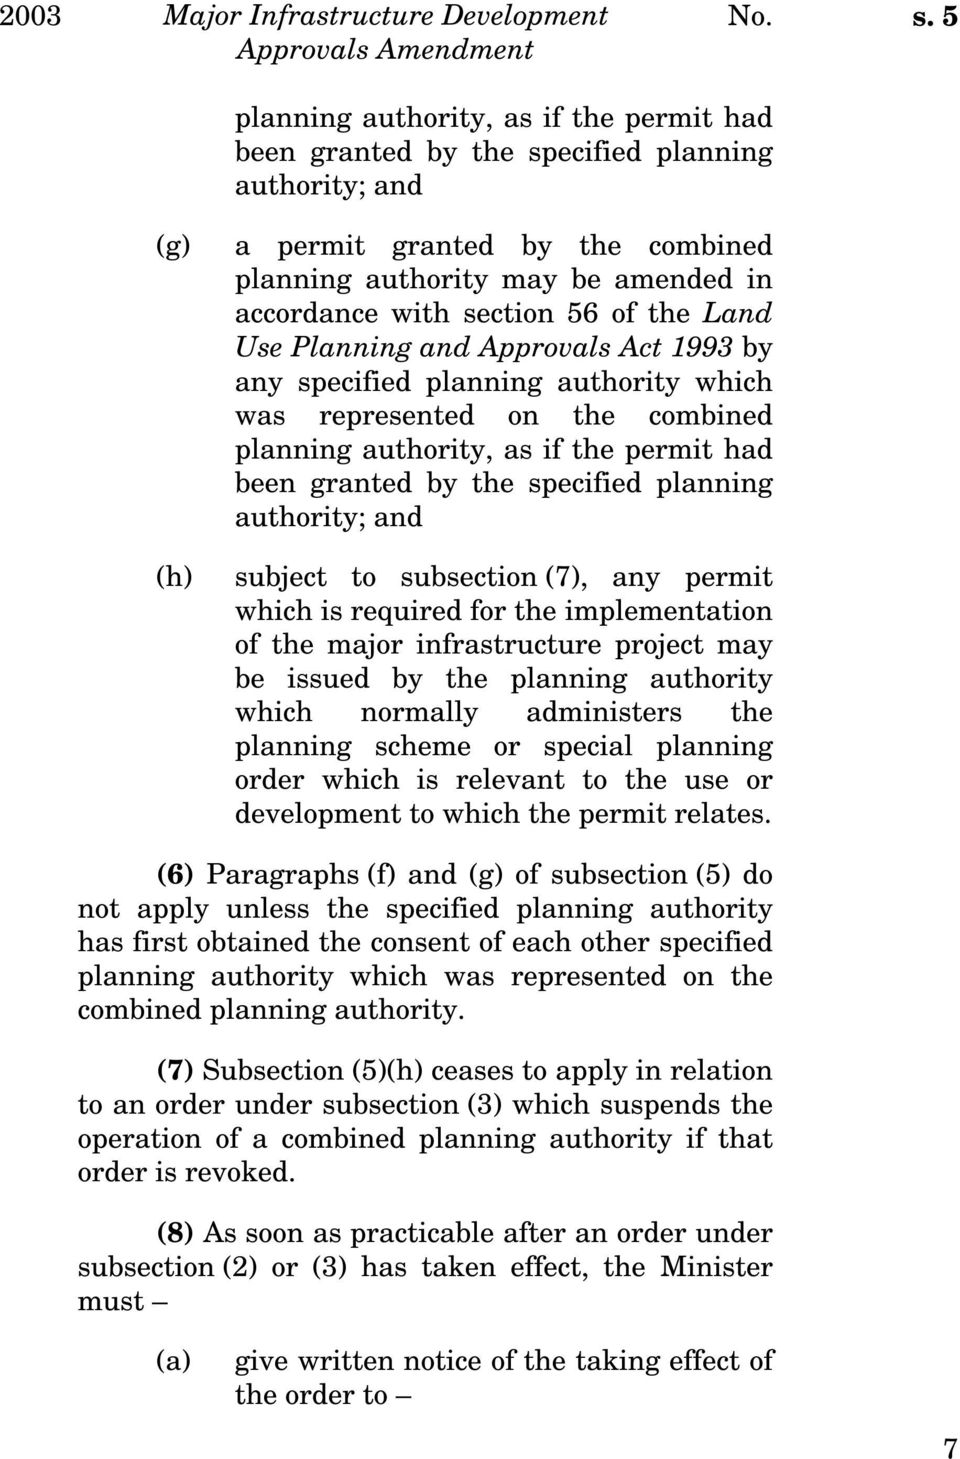 56 of the Land Use Planning and Approvals Act 1993 by any specified planning authority which was represented on the combined planning authority, as if the permit had been granted by the specified